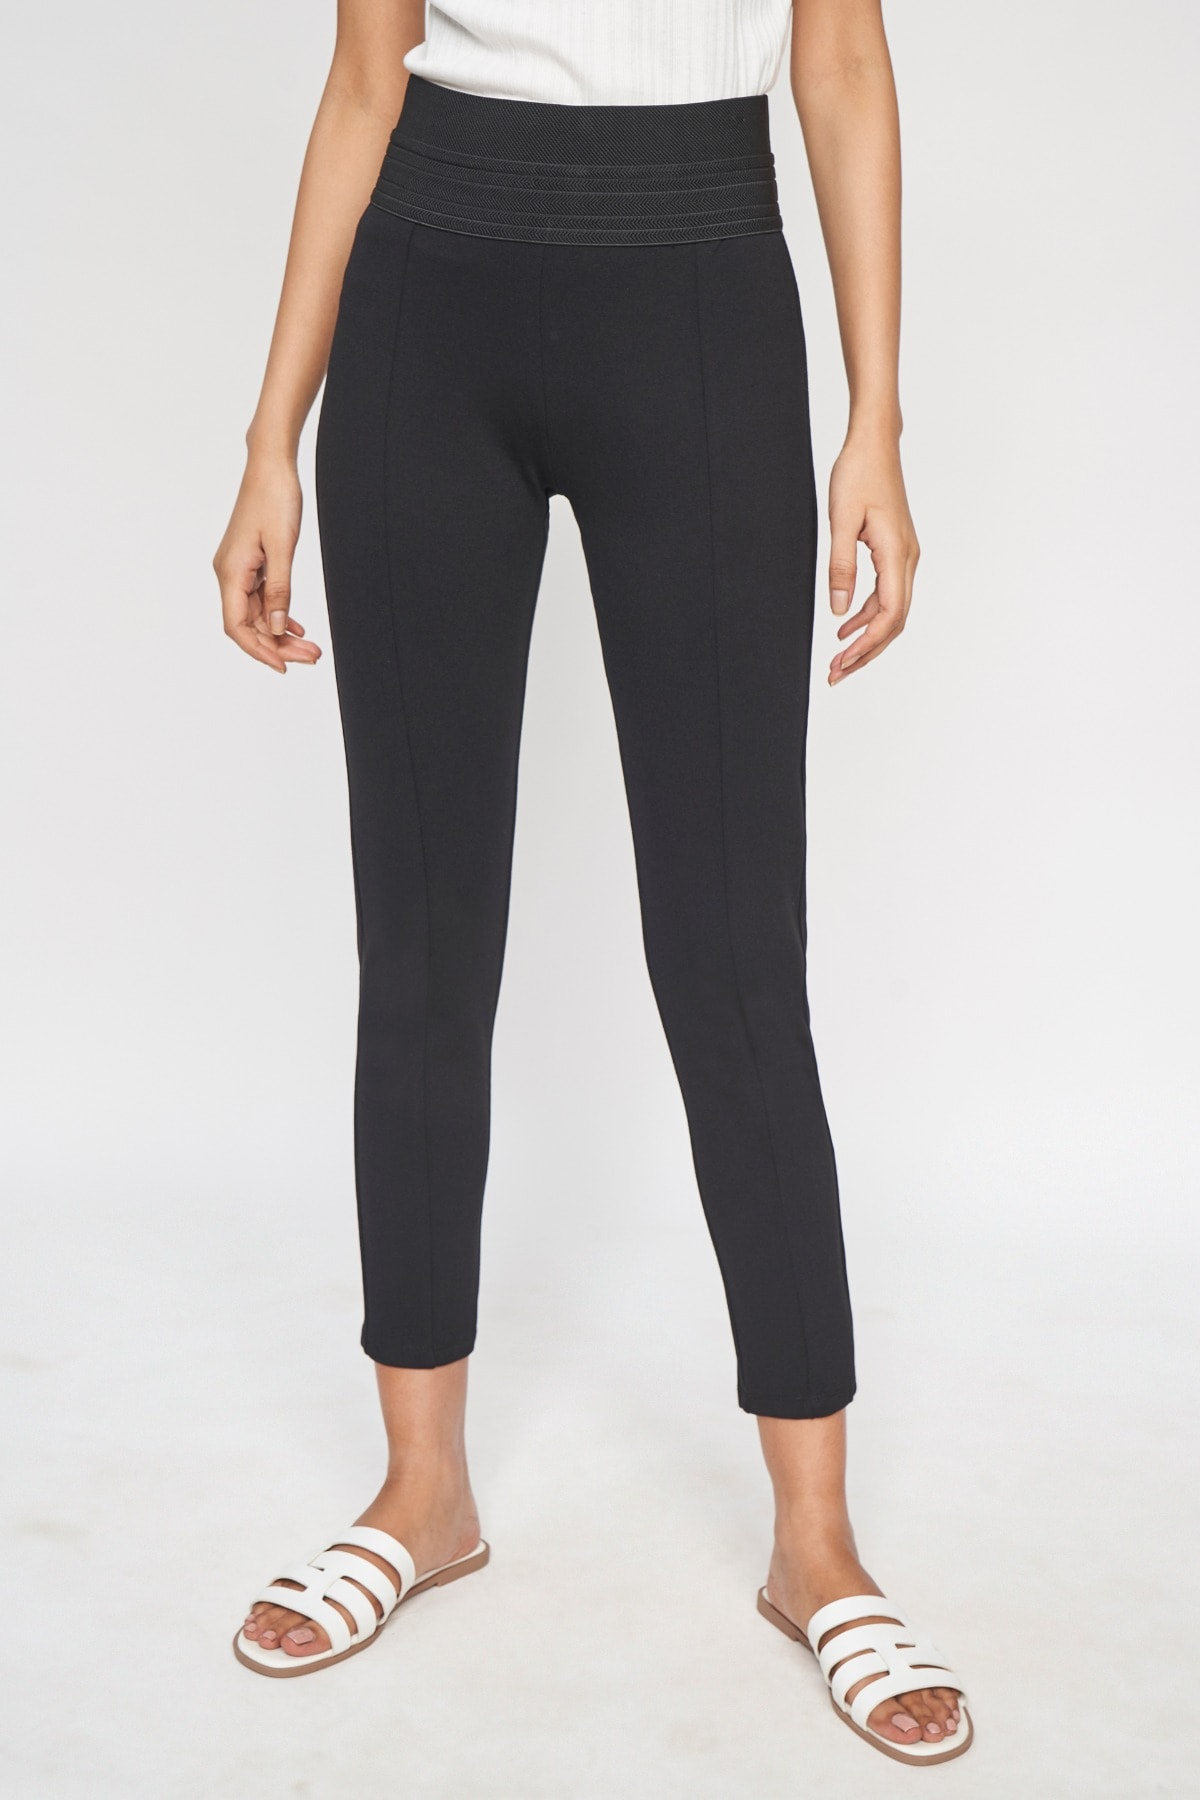 AND | Black Solid  Bottom